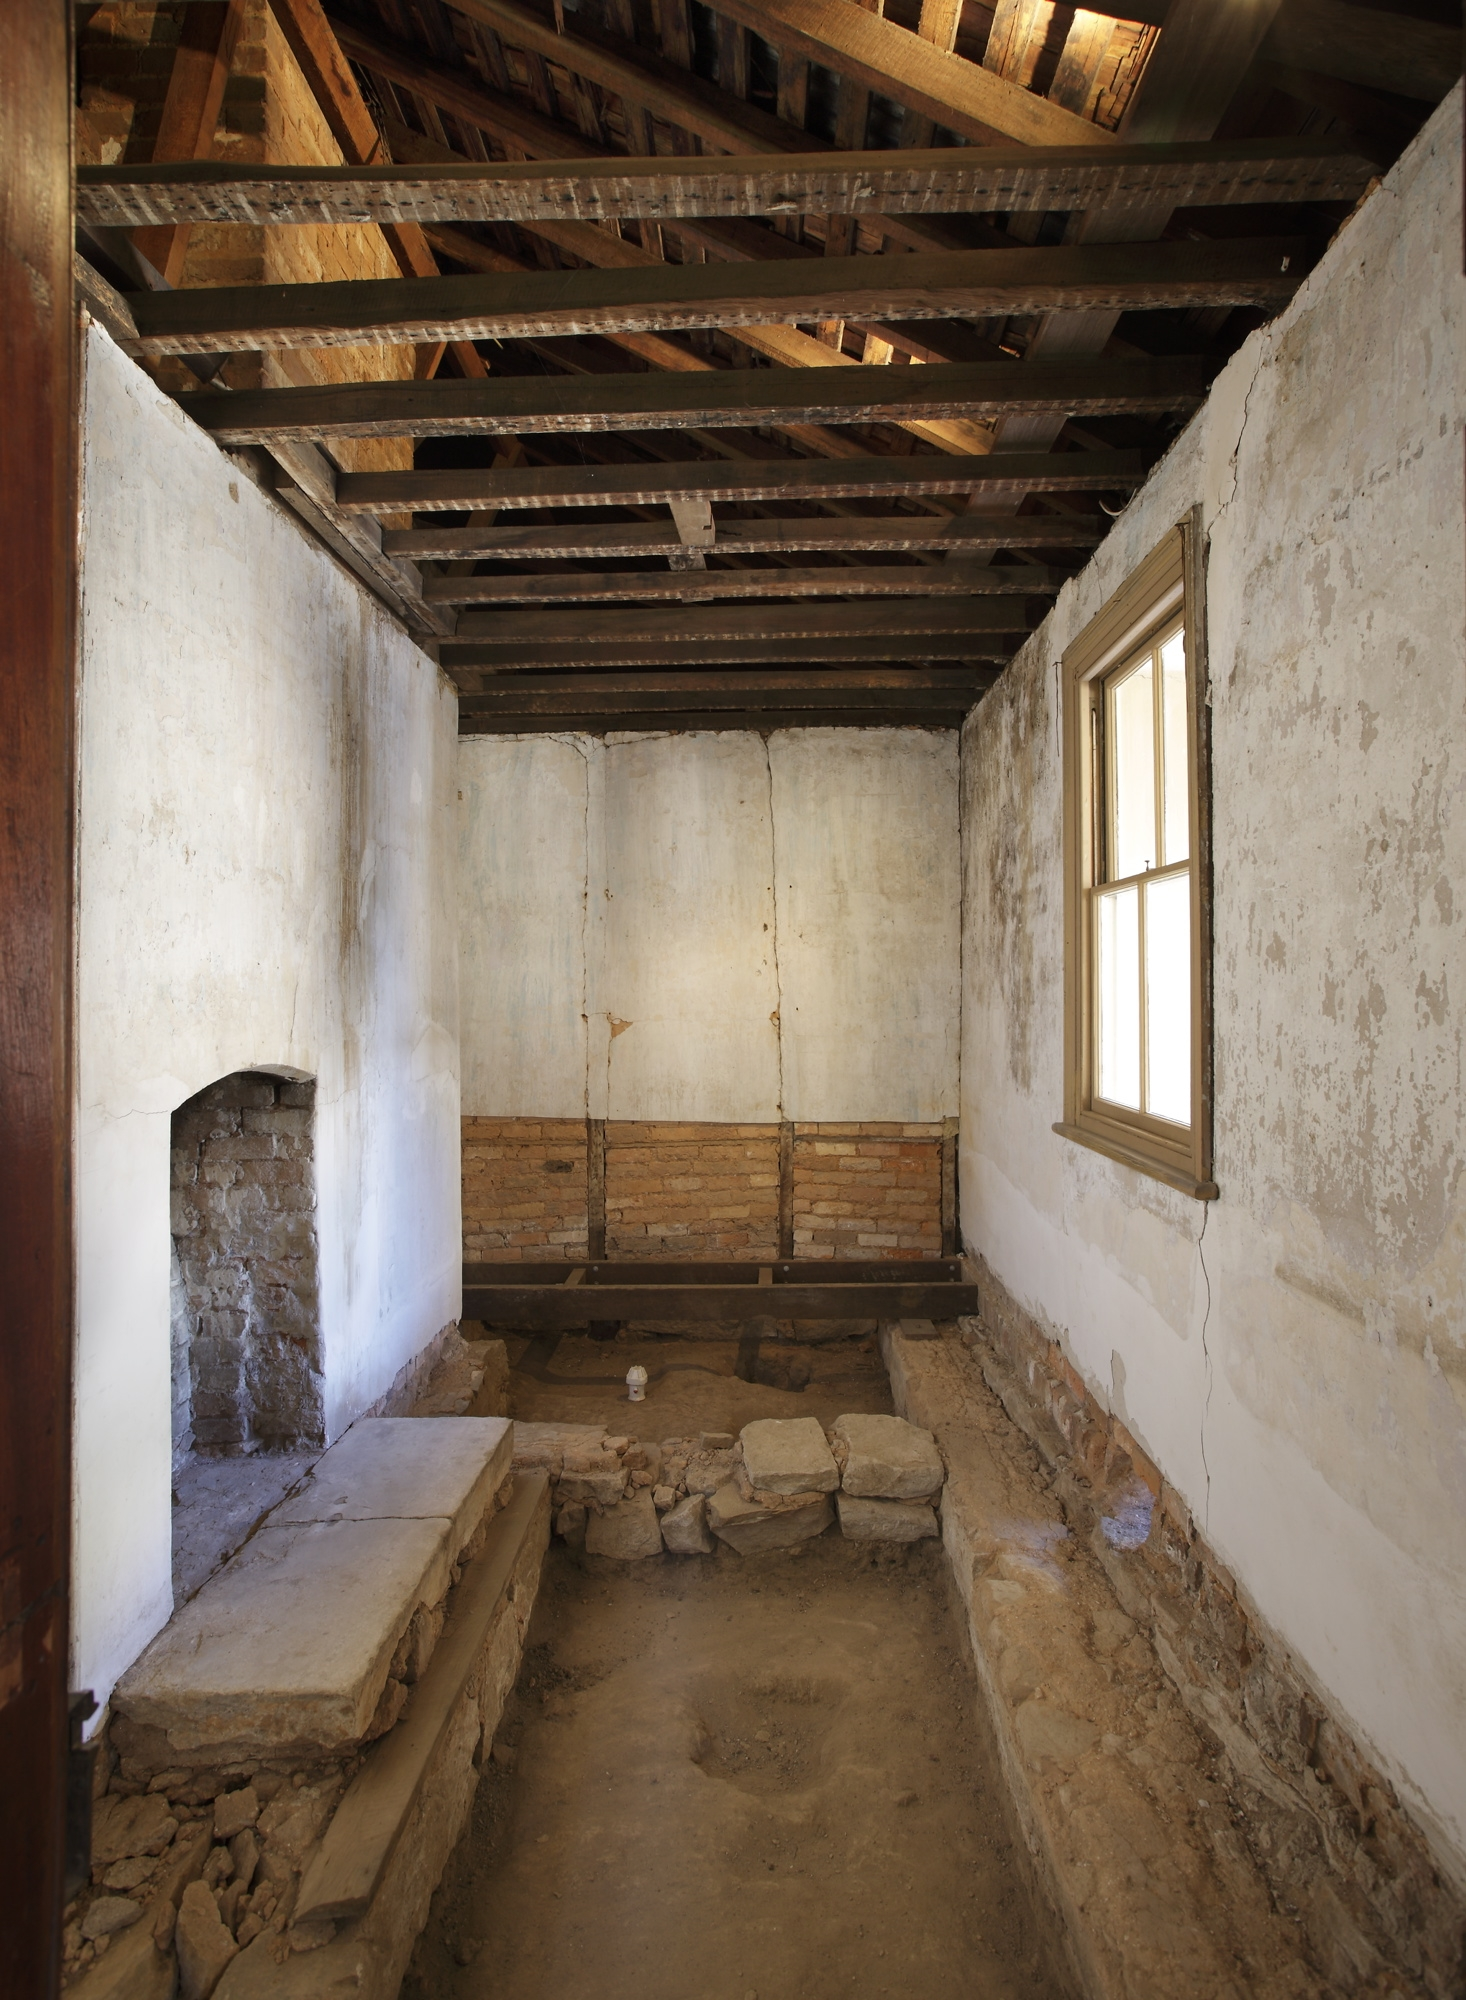 View of unrefurbished room showing excavated floorboards.